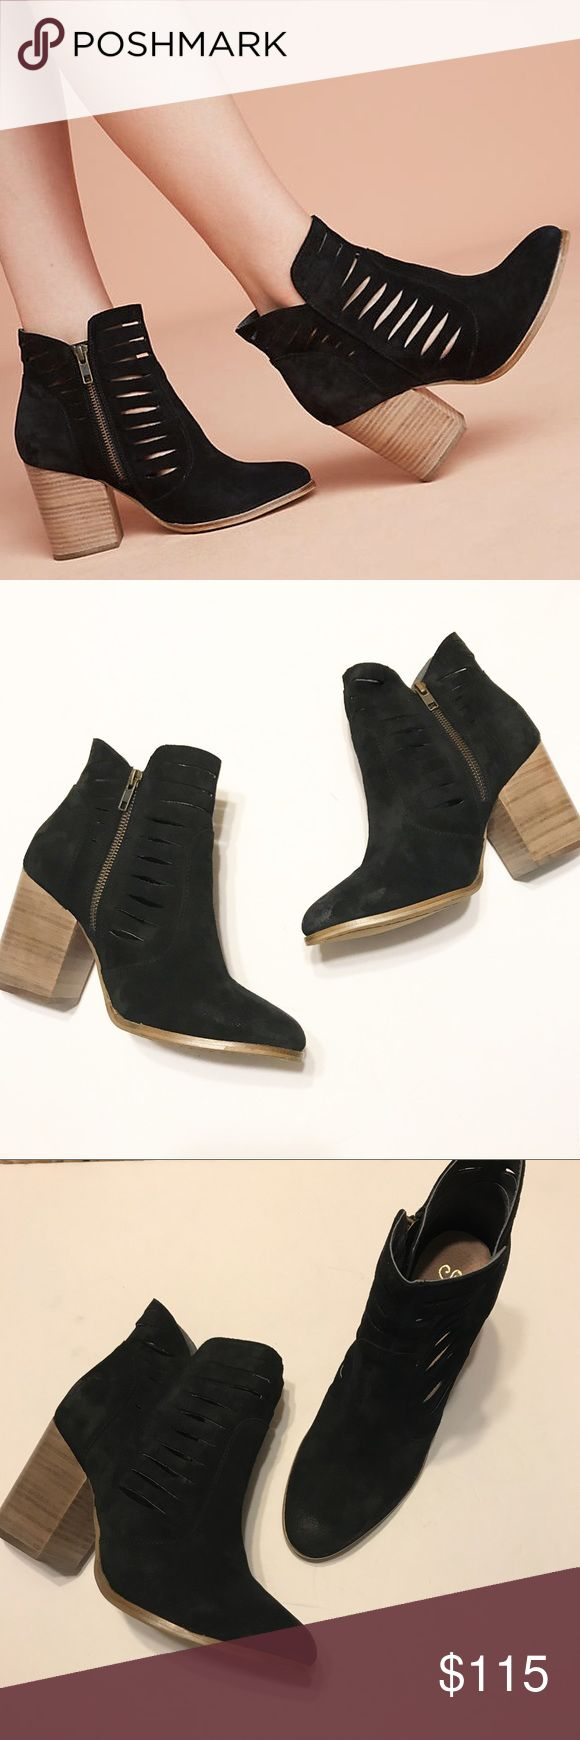 """NIB! Seychelles by Anthropologie """"Let's Go Crazy"""" NEW in box! • Seychelles, as sold by Anthropologie booties • """"Let's Go Crazy"""" black booties • Leather • Stacked wood heel • Cool slits • Ask all questions before purchasing! • Size 8. Seychelles Shoes Ankle Boots & Booties"""